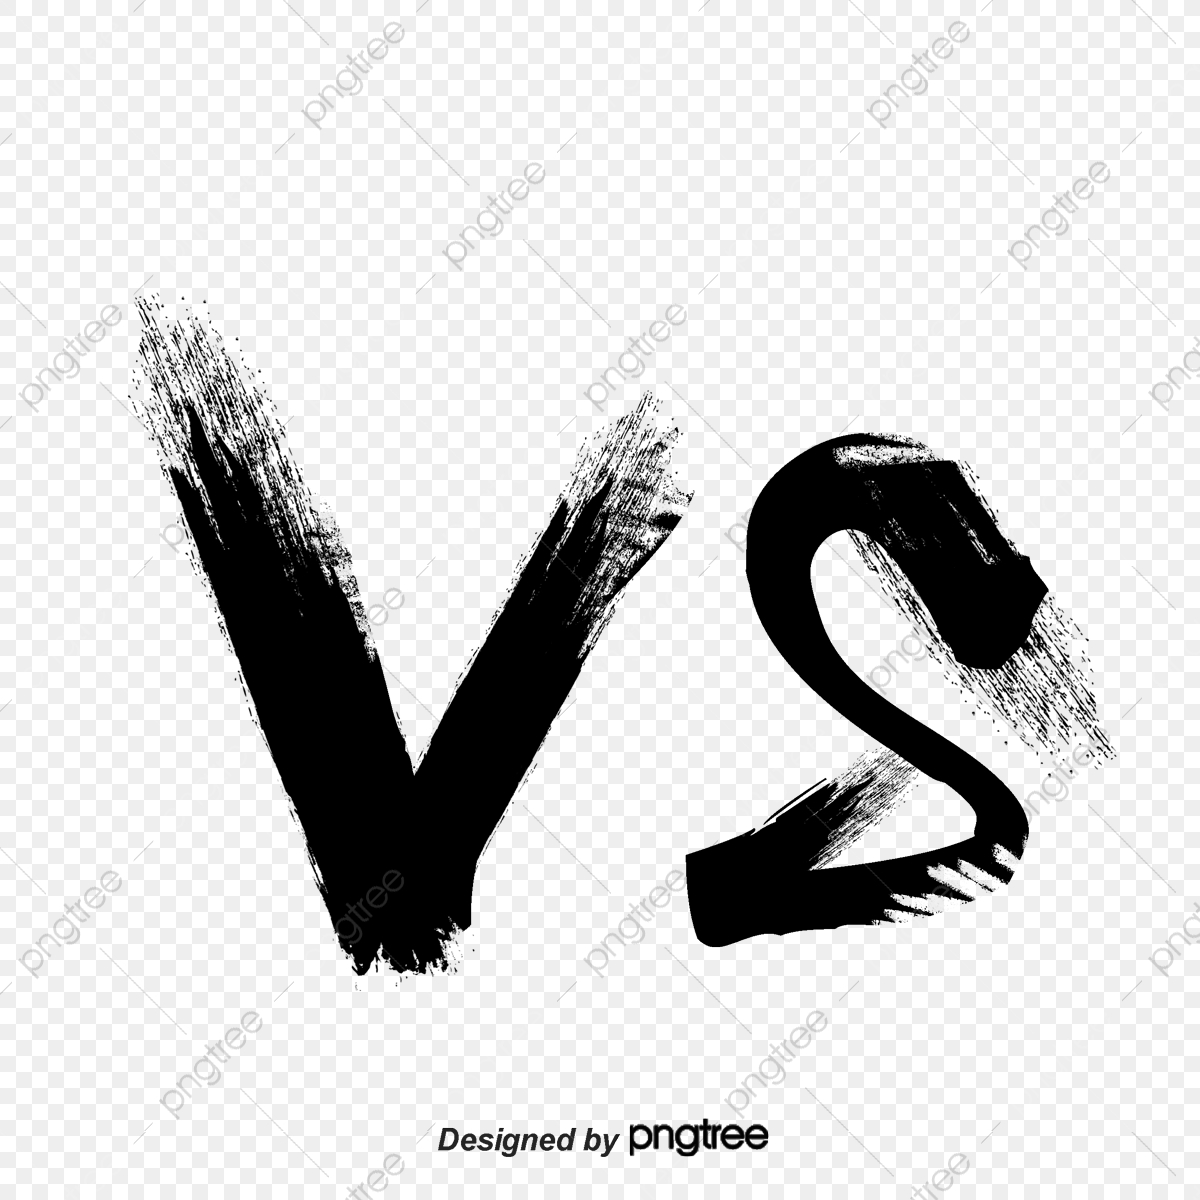 / Vs Vs Vs Clipart Png Transparent Clipart Image And Psd File